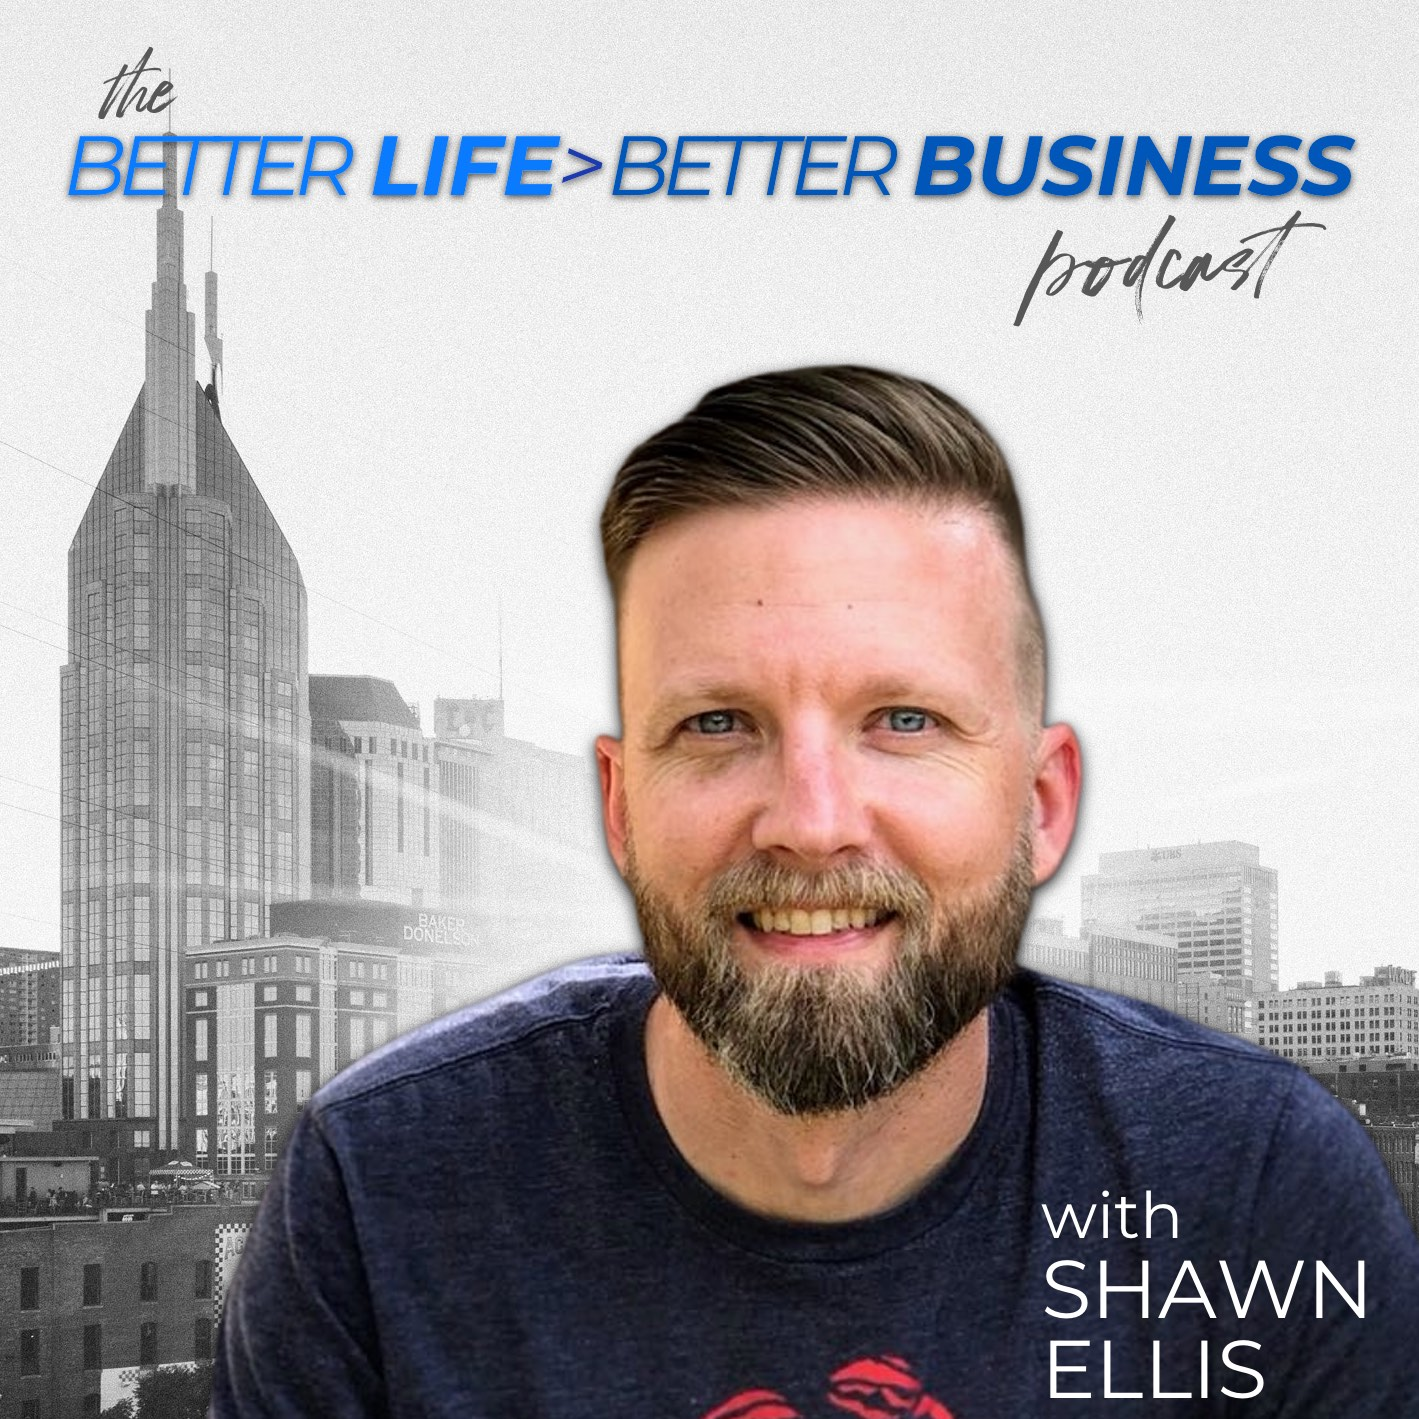 The Better Life > Better Business Podcast with Shawn Ellis